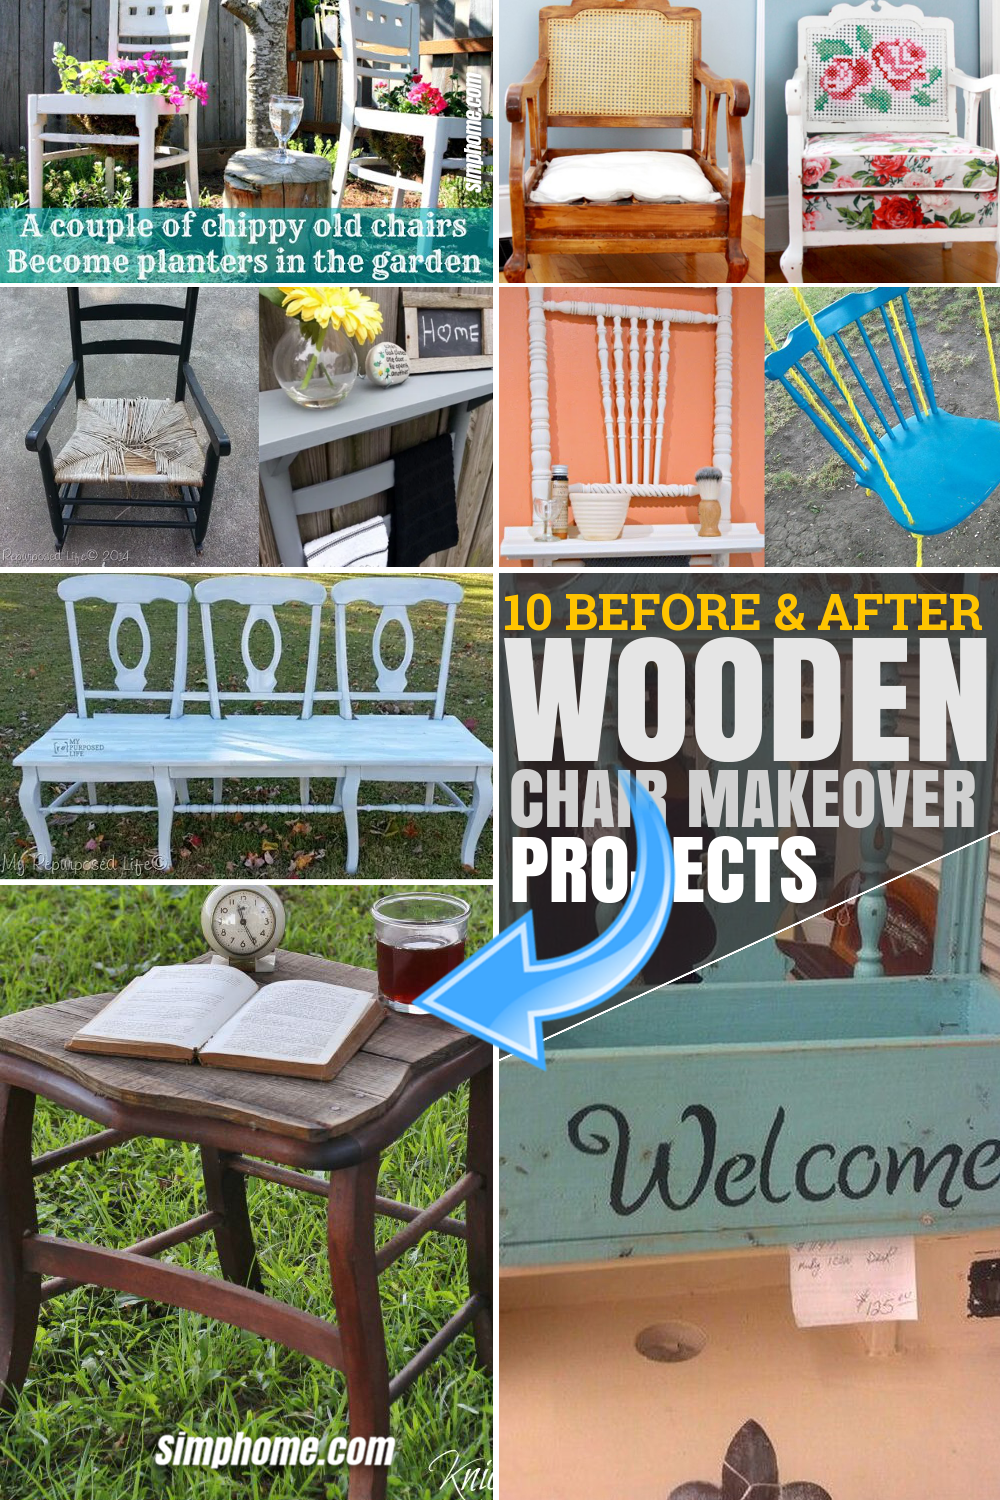 SIMPHOME.COM 10 Before and After Wooden Chair Makeover Projects Pinterest Featured Image